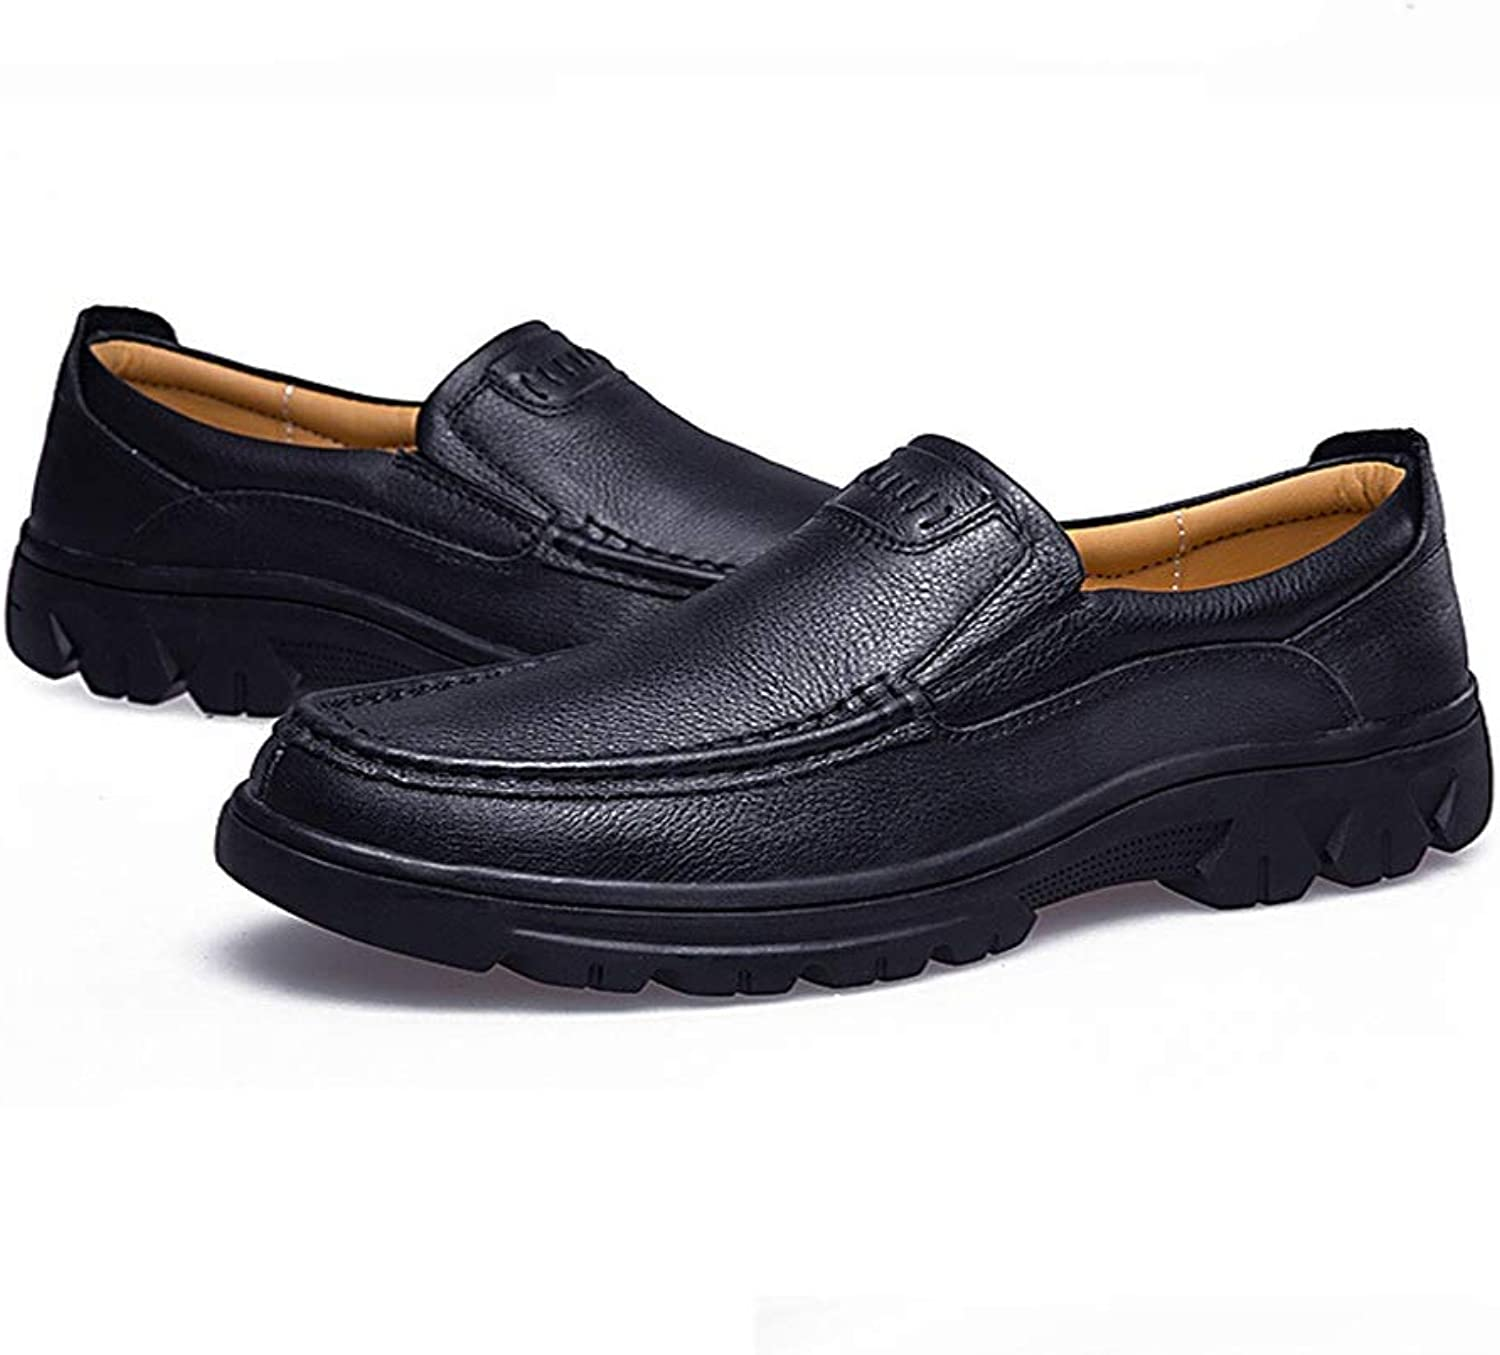 CATEDOT Peas shoes Spring and summer Lightweight Lazy shoes Comfortable Genuine Leather (color   Black, Size   7.5UK)